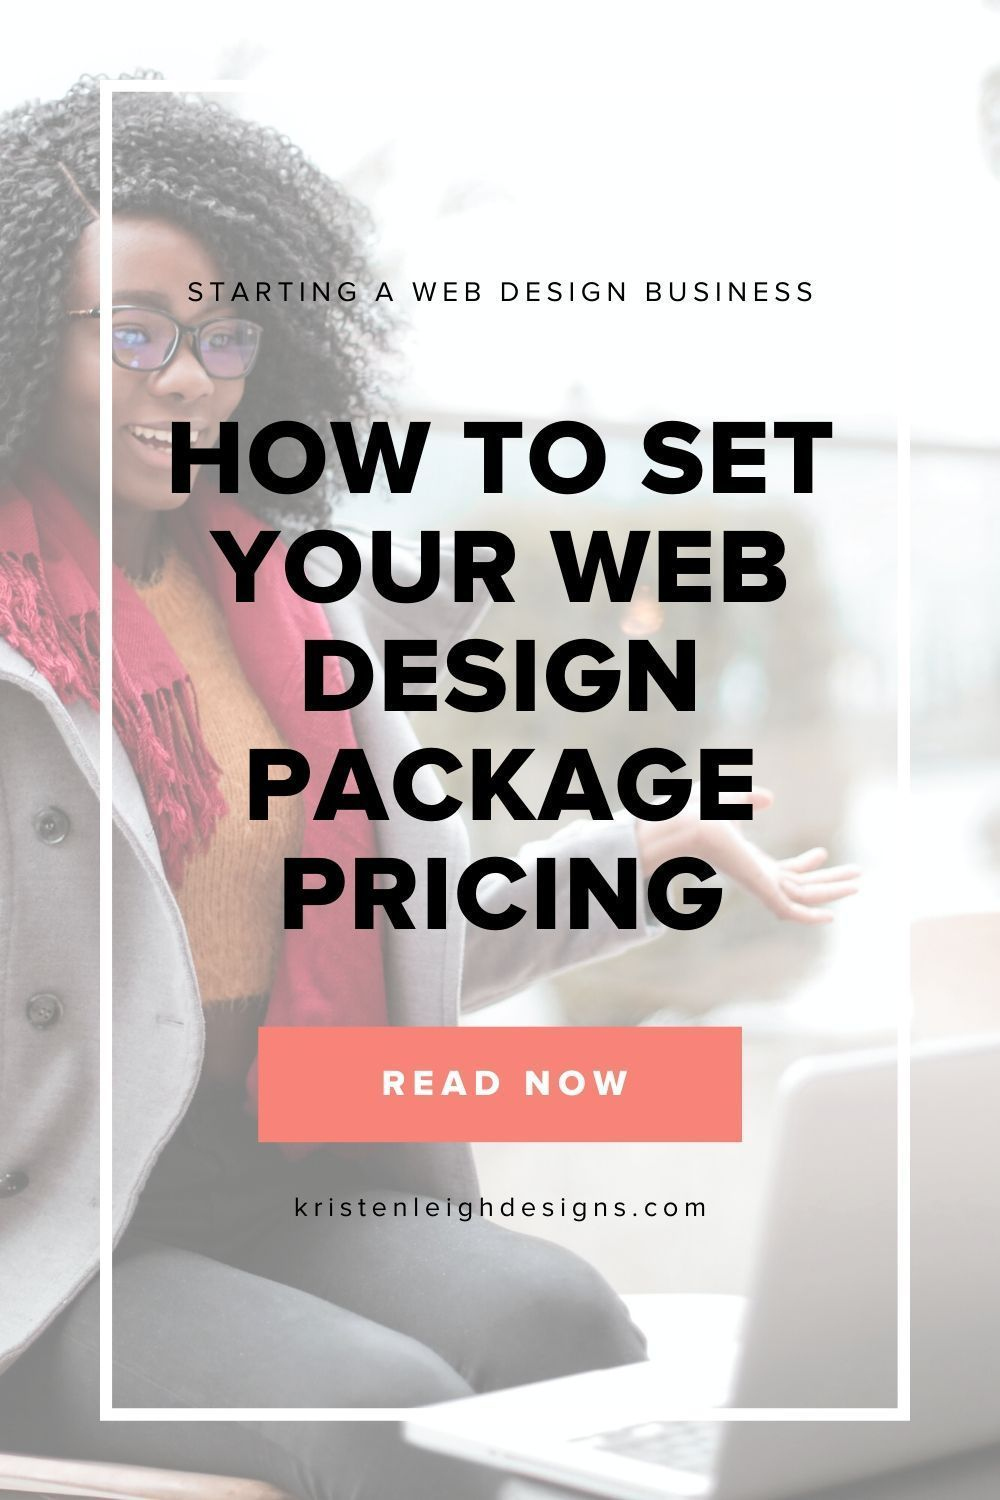 How Much You Should Charge To Build A Website Kristen Leigh Designs In 2020 Online Web Design Courses Freelance Web Design Online Side Hustle